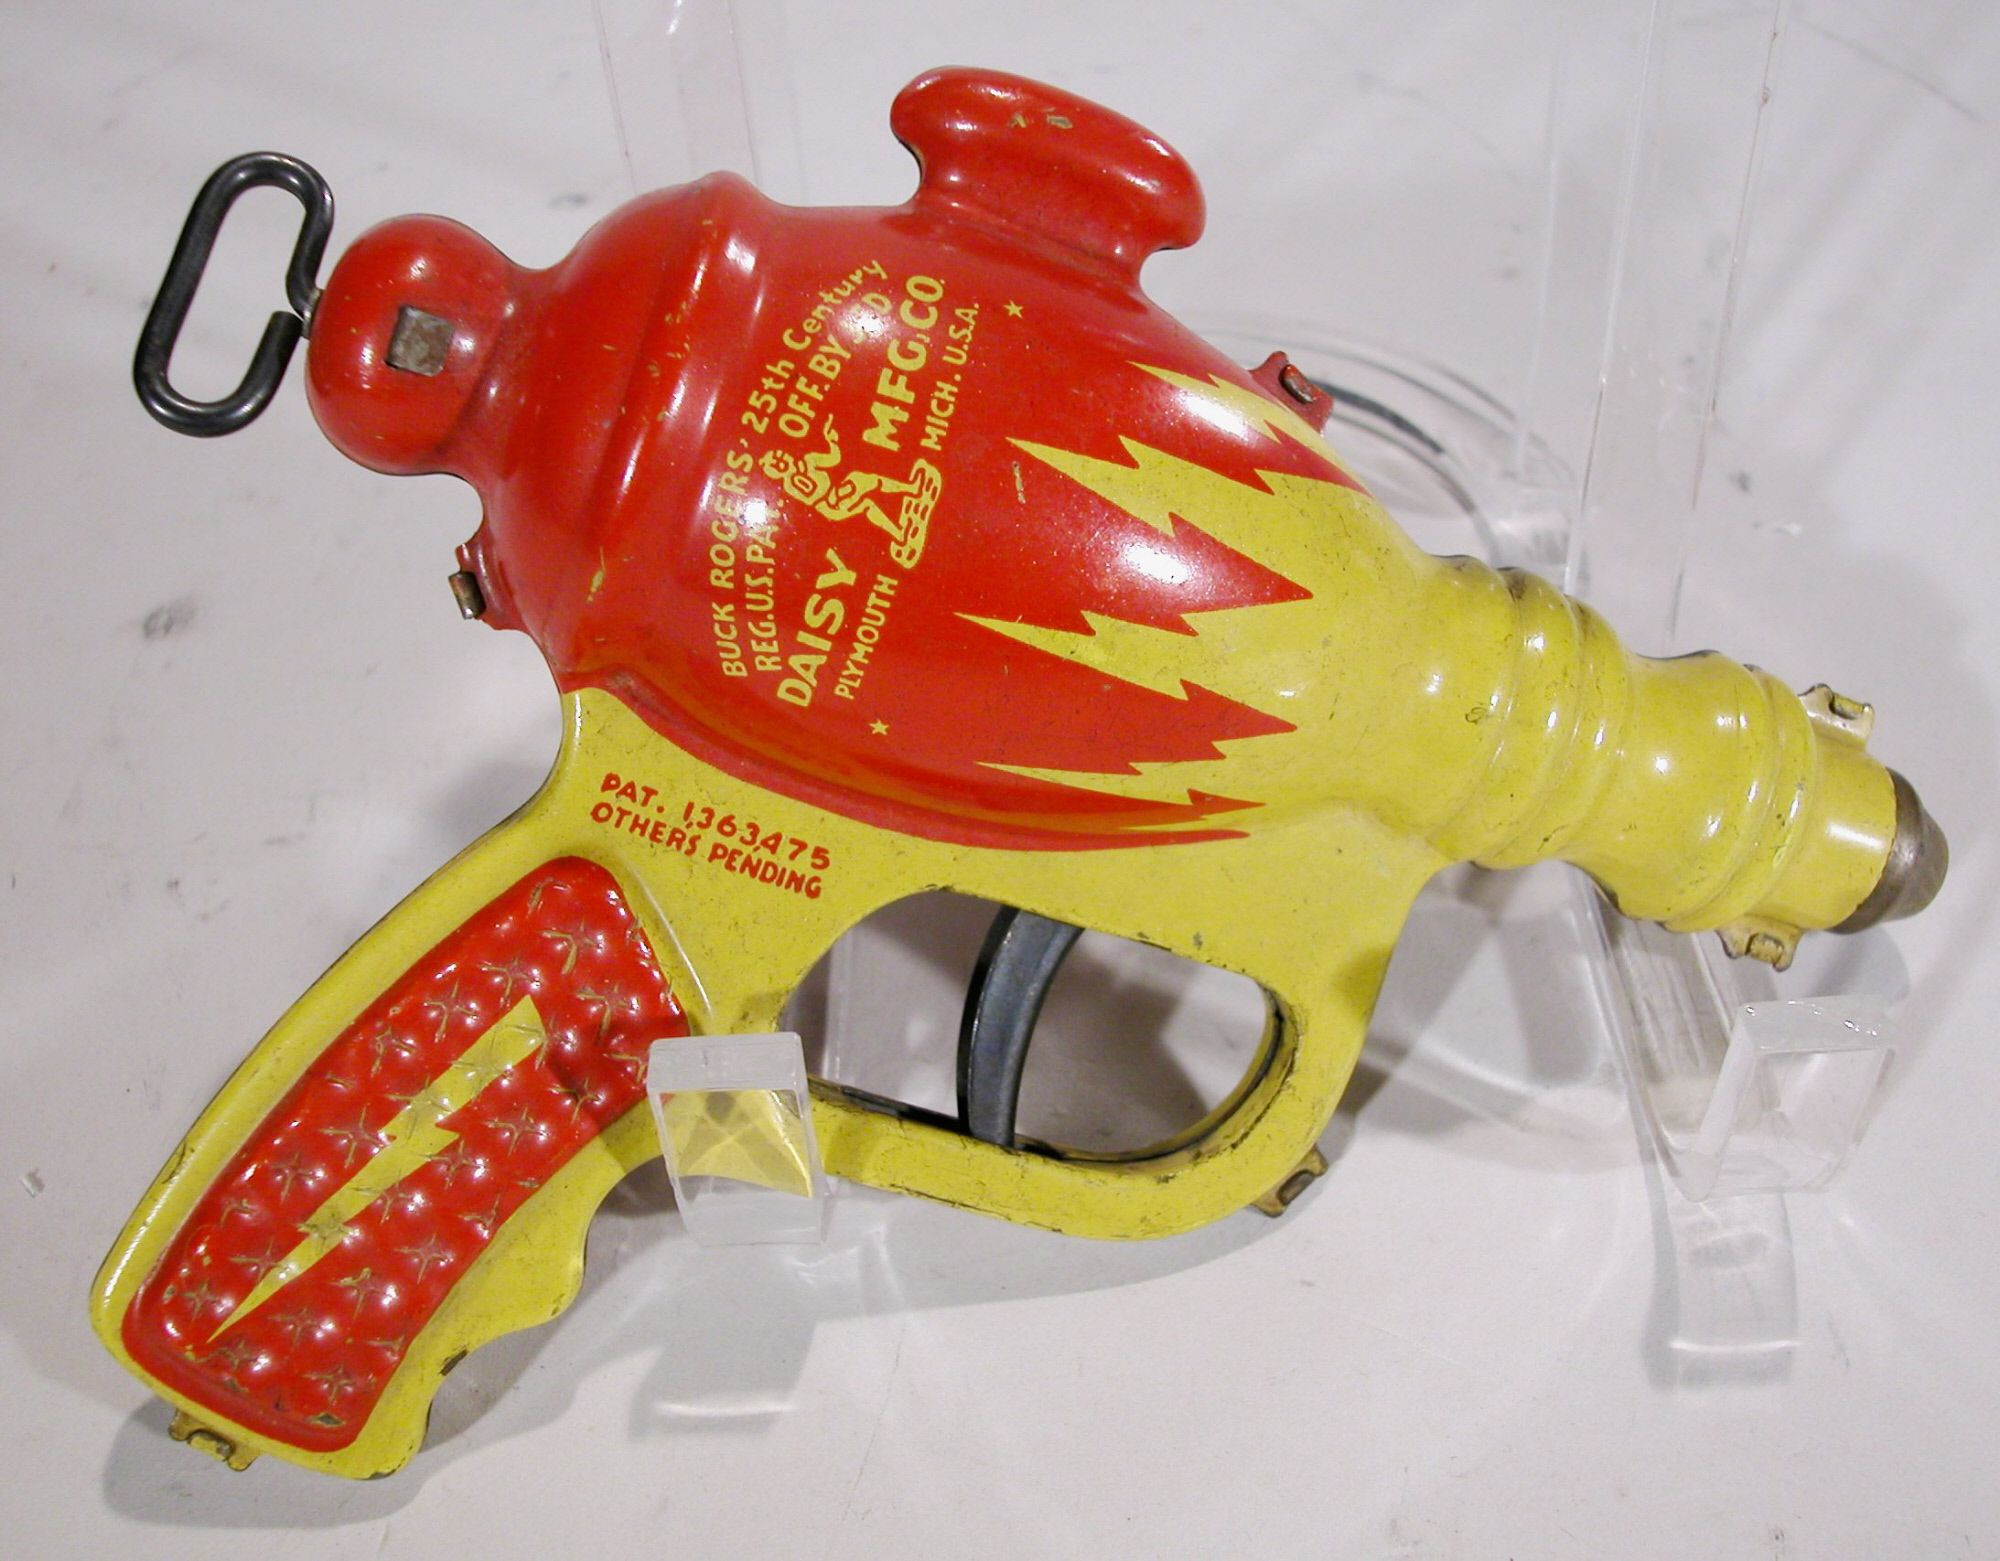 This is a Buck Rogers XZ-44 Liquid Helium Toy Water Pistol manufactured by Daisy Manufacturing Co. in 1936. Inside the toy's metal body, where the red and yellow lightning bolts meet, a leather sack held the water for this water gun. The gun was also issued in a solid copper-colored finish, which has become the more rare of the two versions.